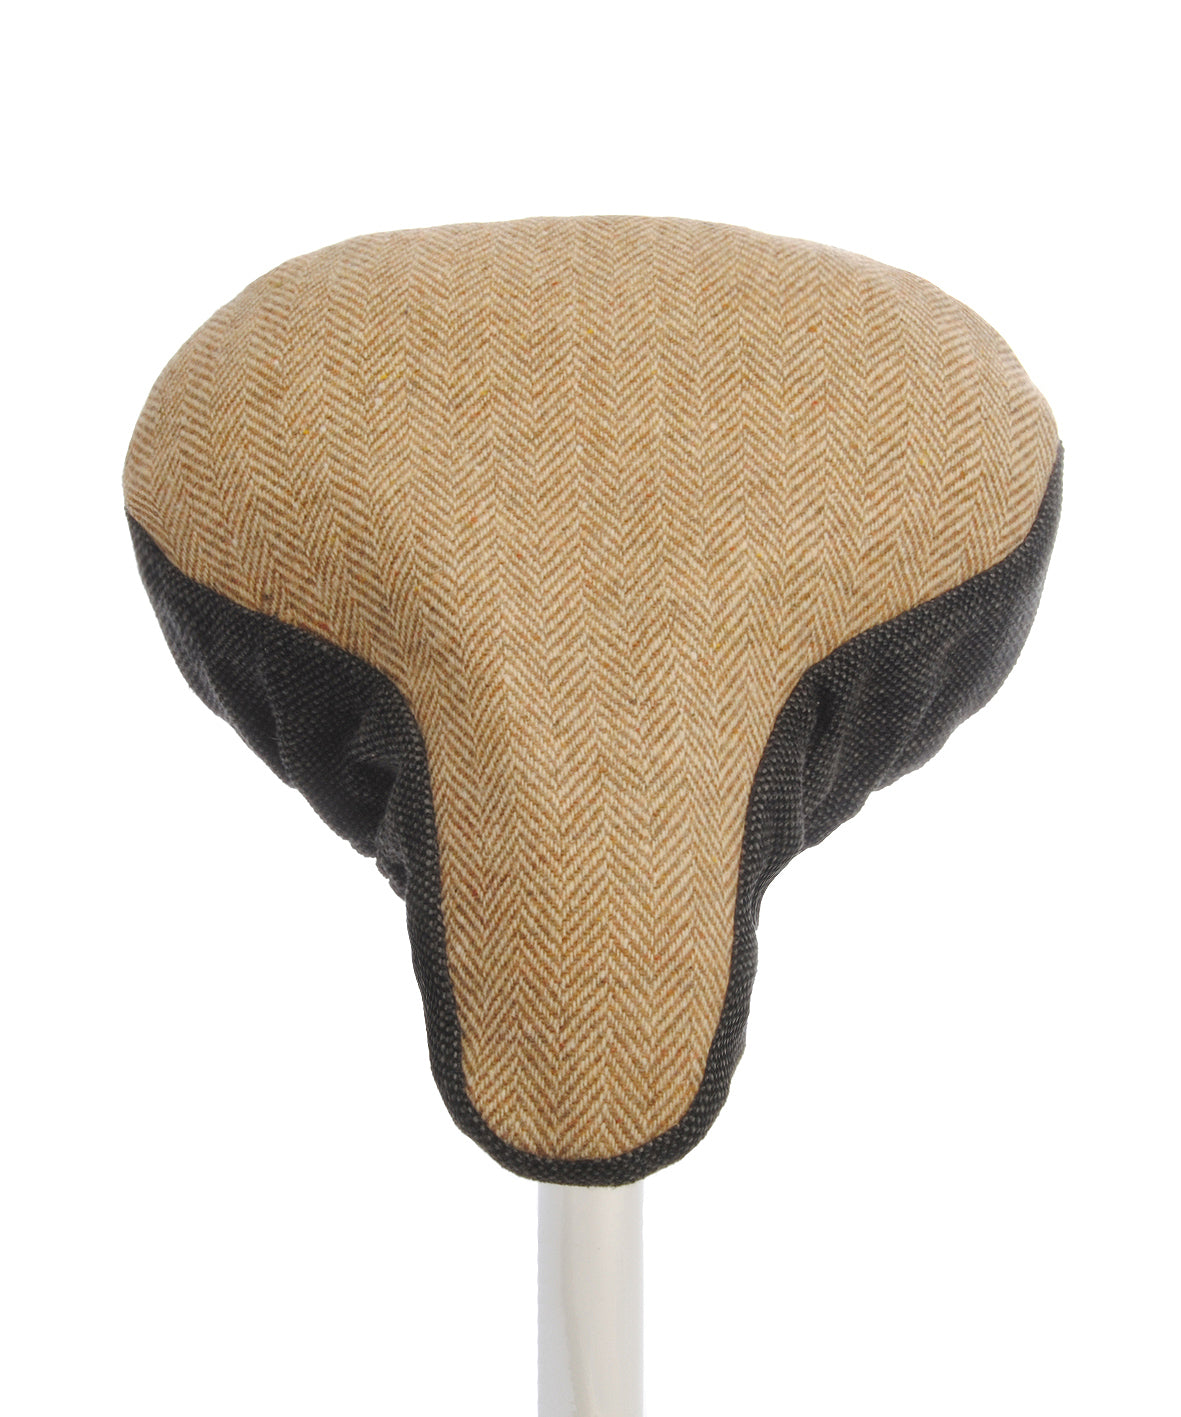 Sutherland I Saddle Cover - Beige